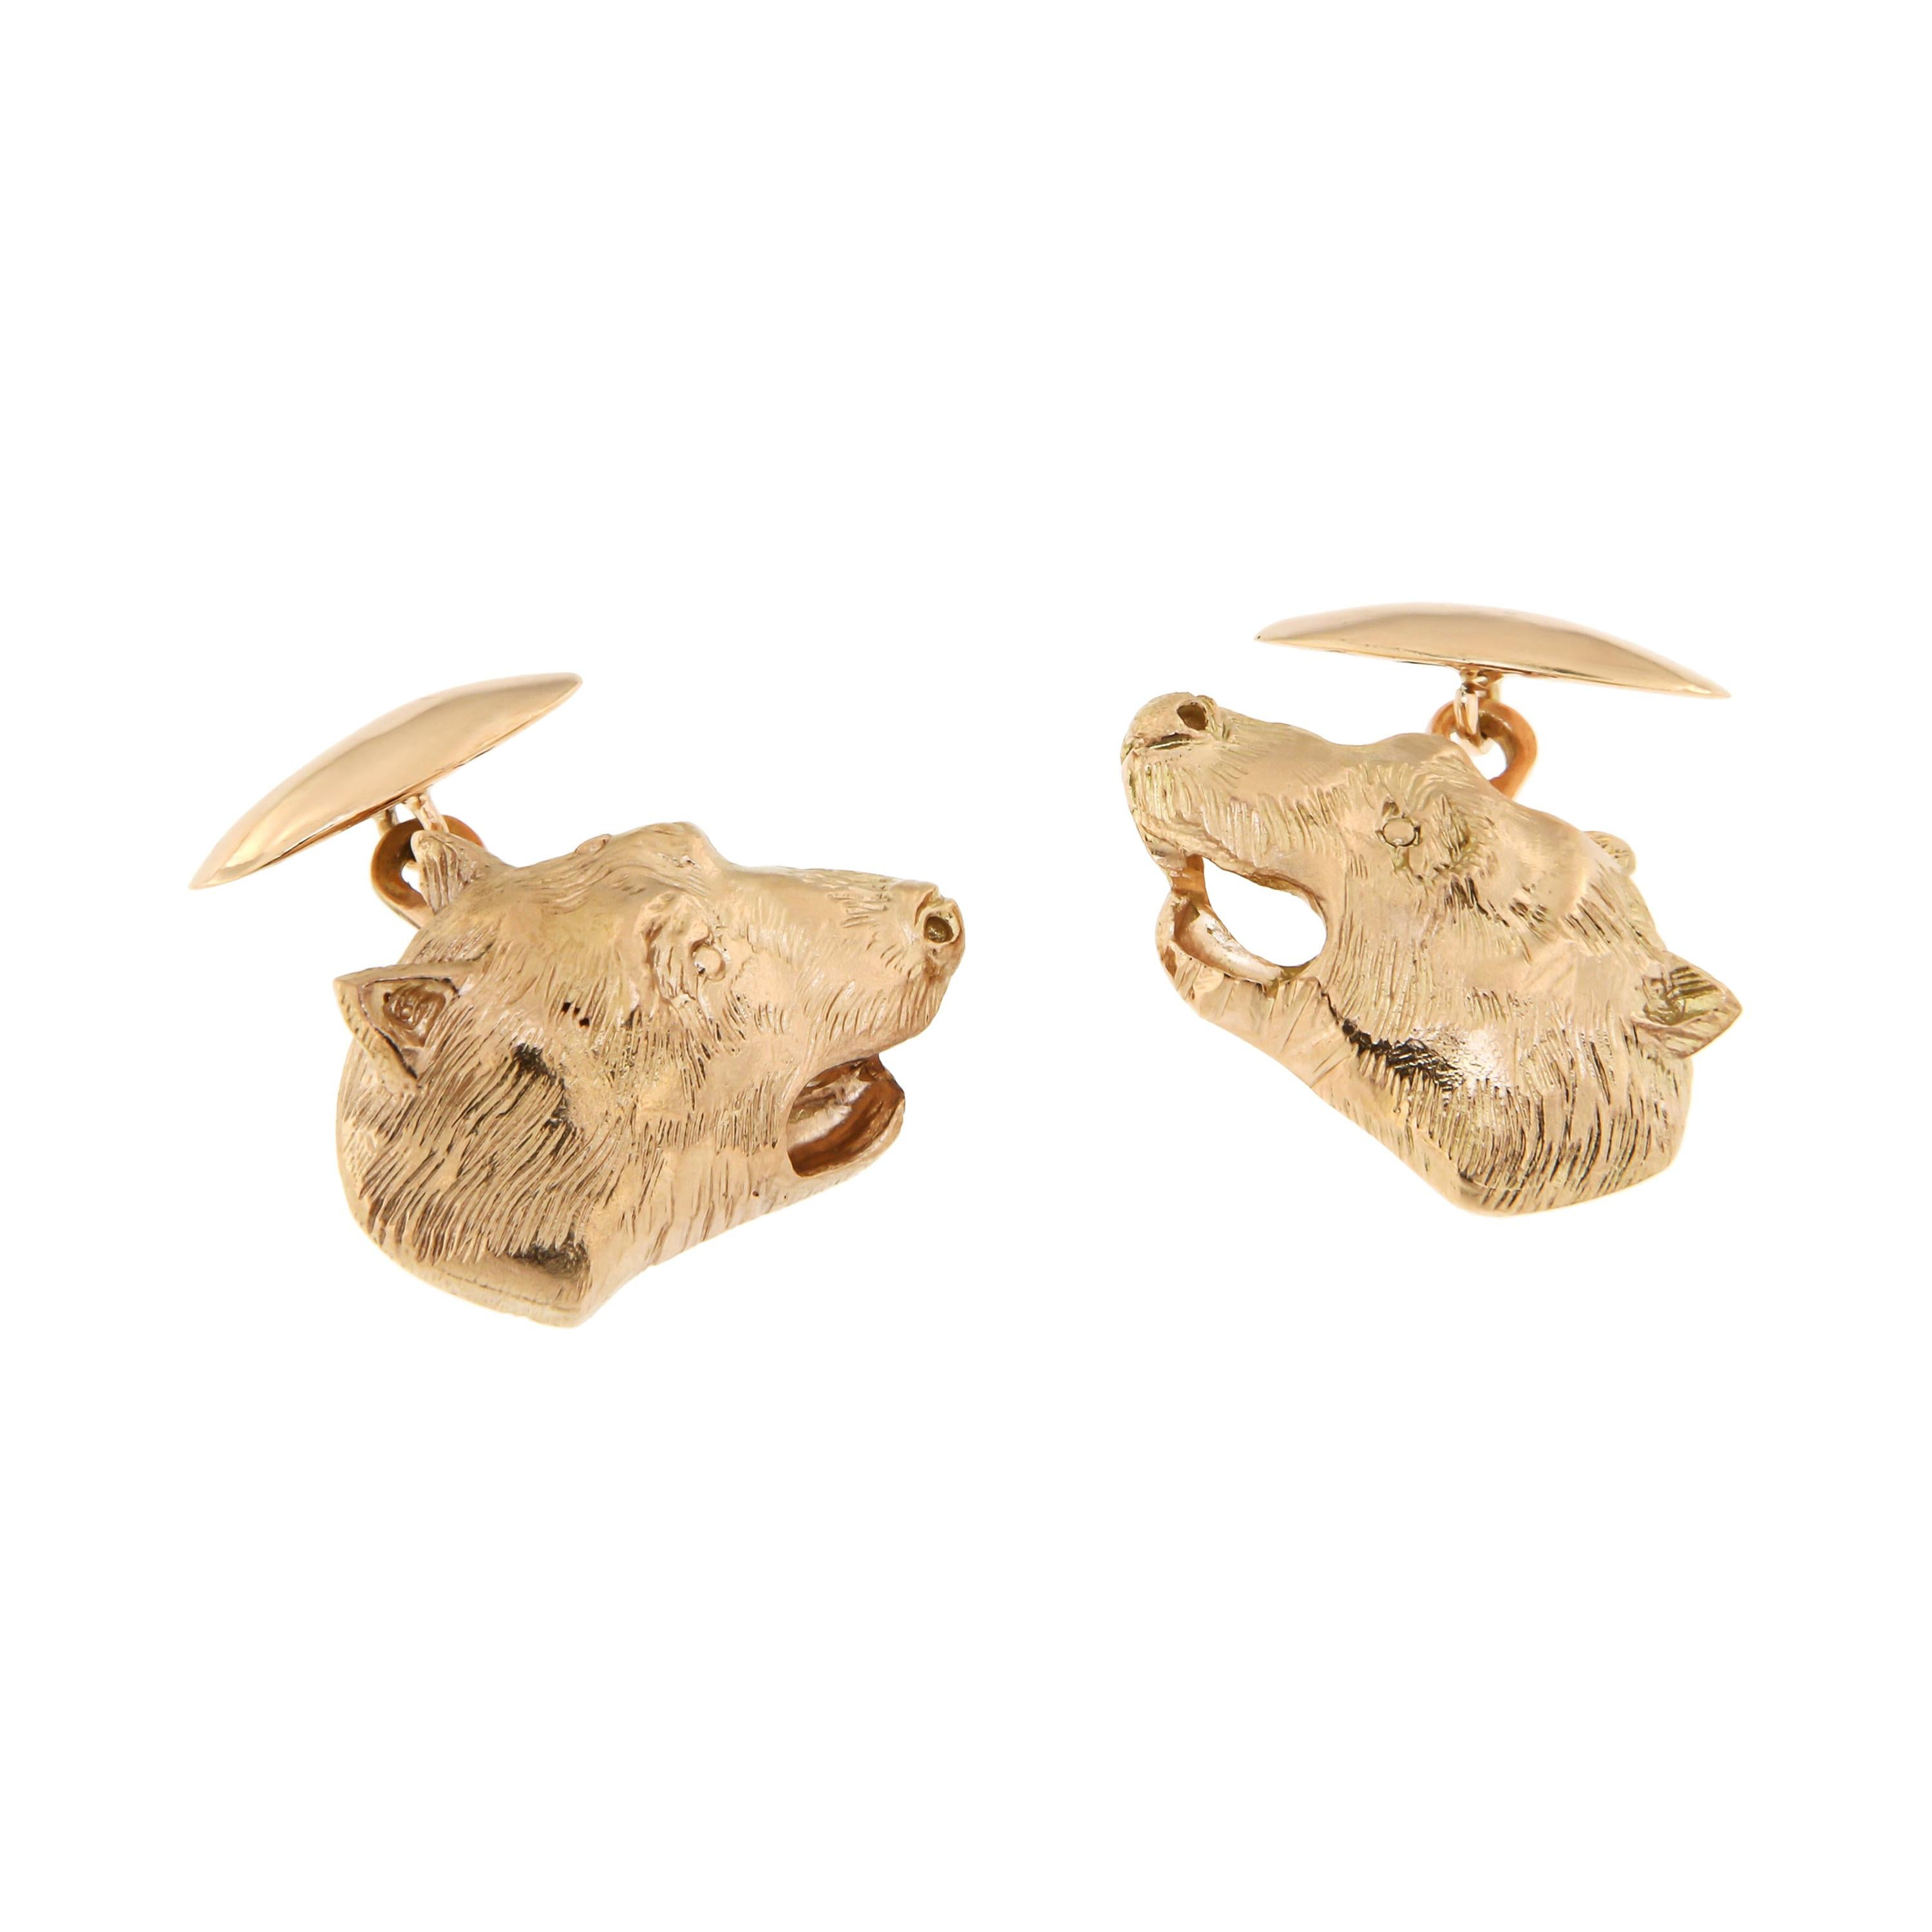 Rose Gold Bear Cufflinks Handcrafted in Italy by Botta Gioielli